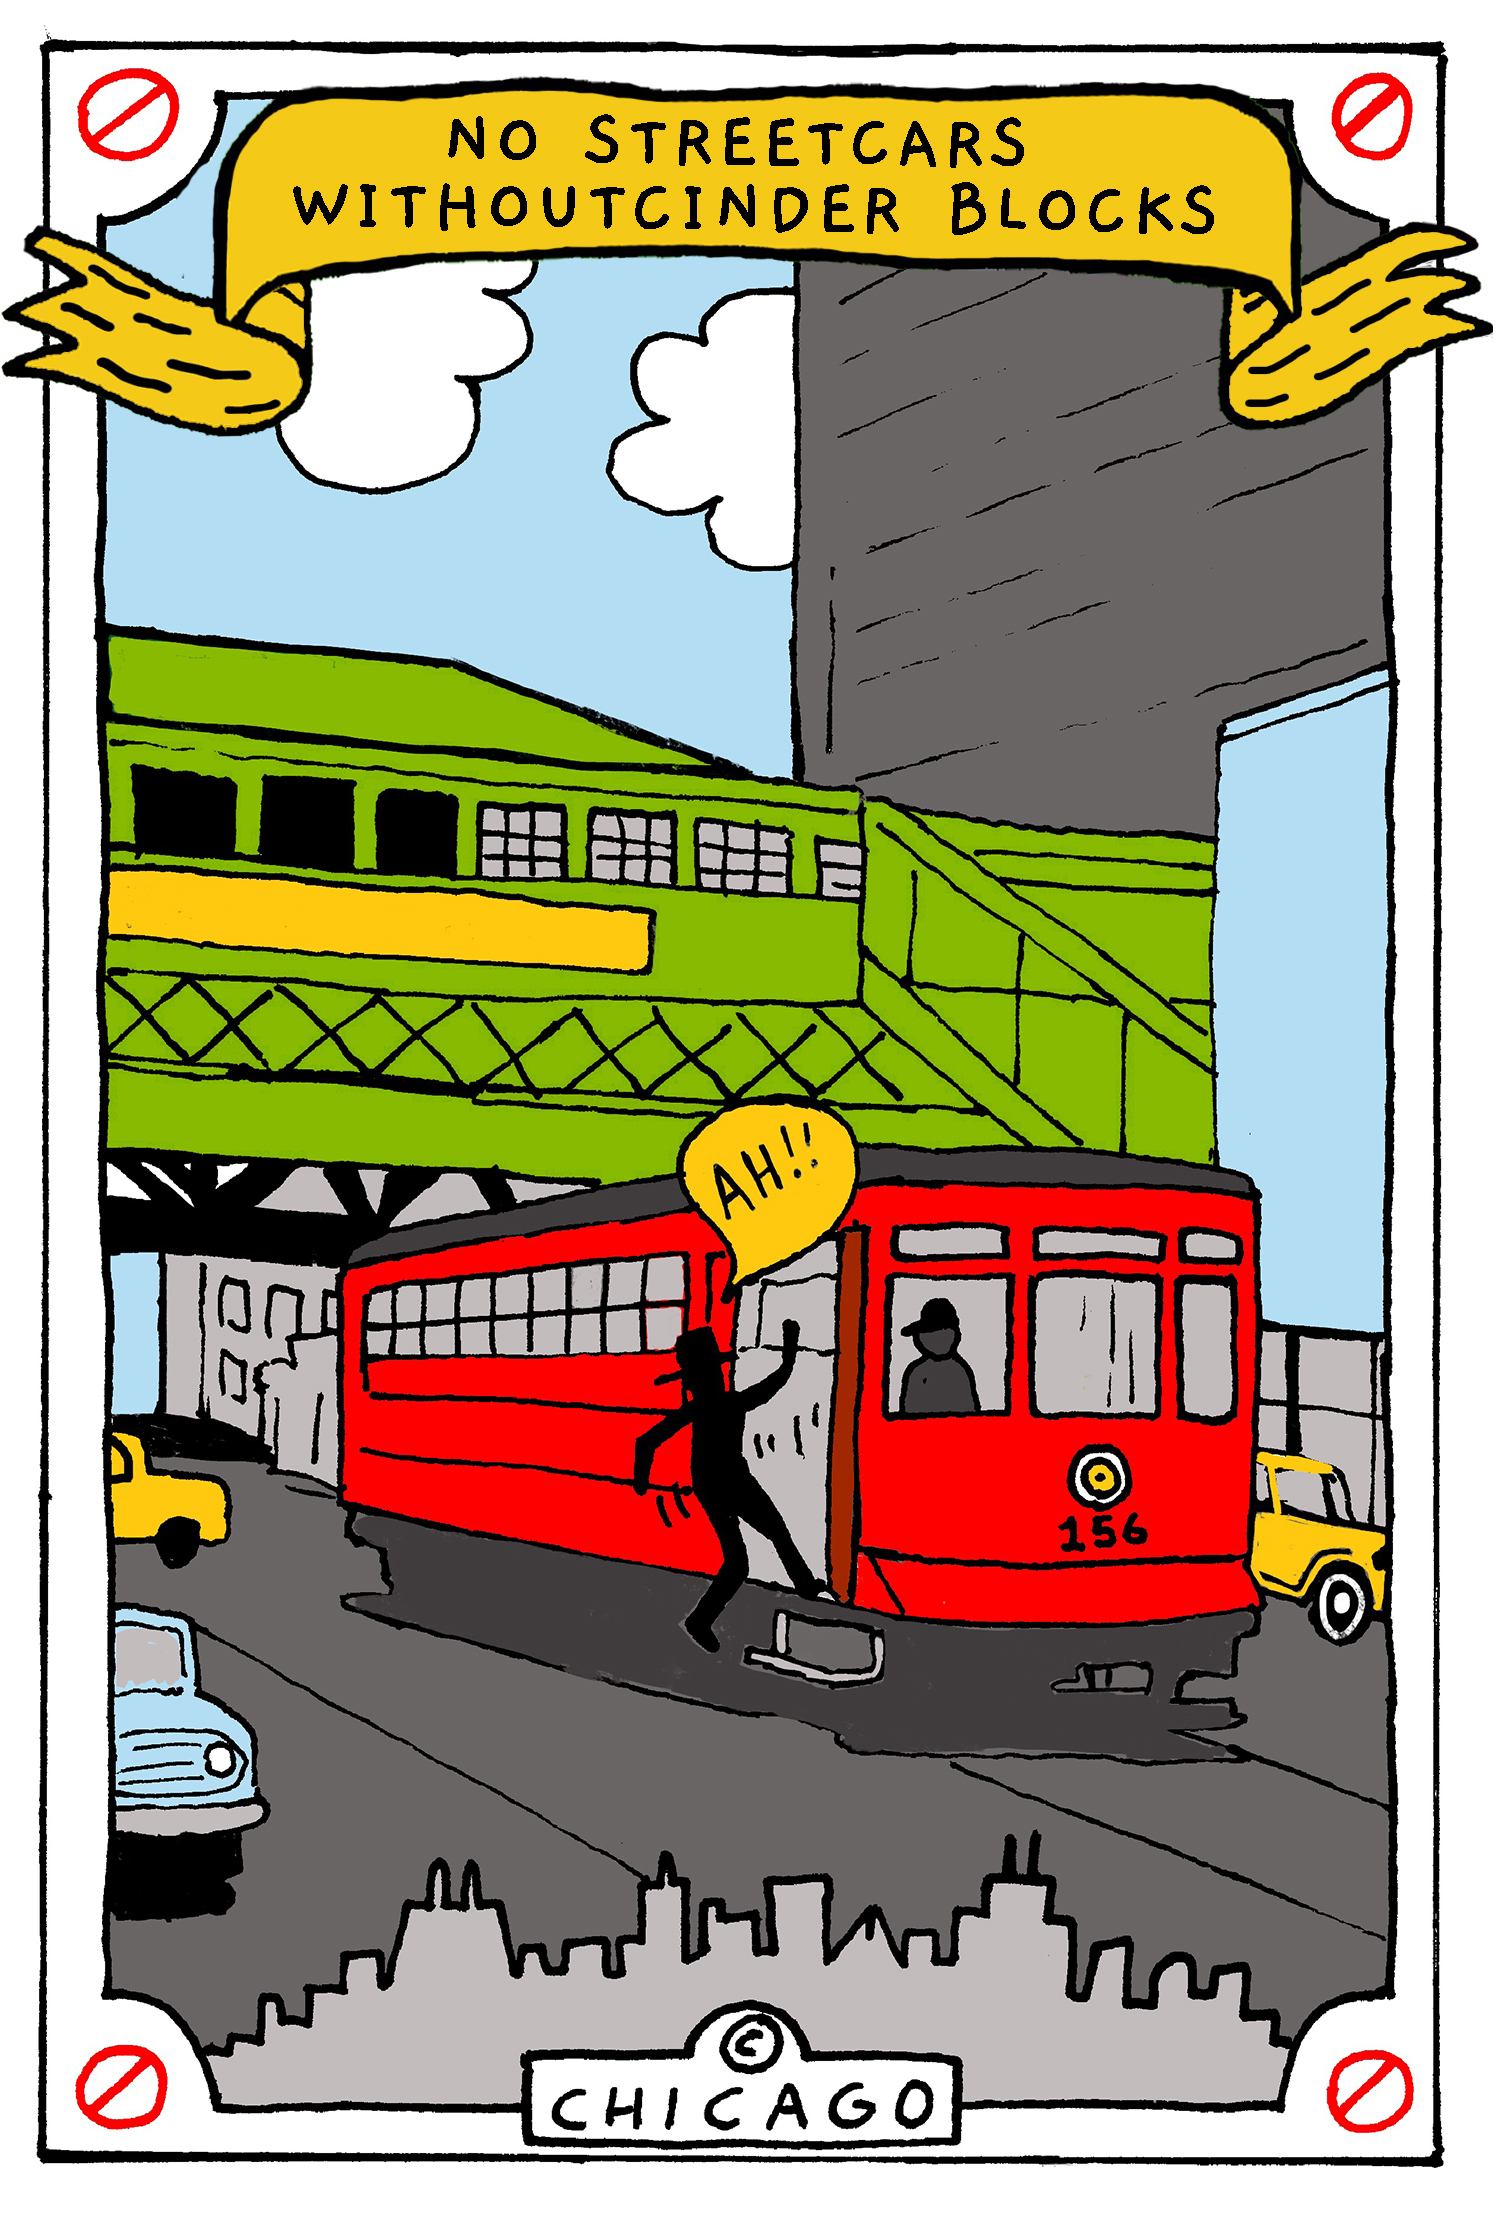 This is a drawing of someone falling while trying to disembark a streetcar.